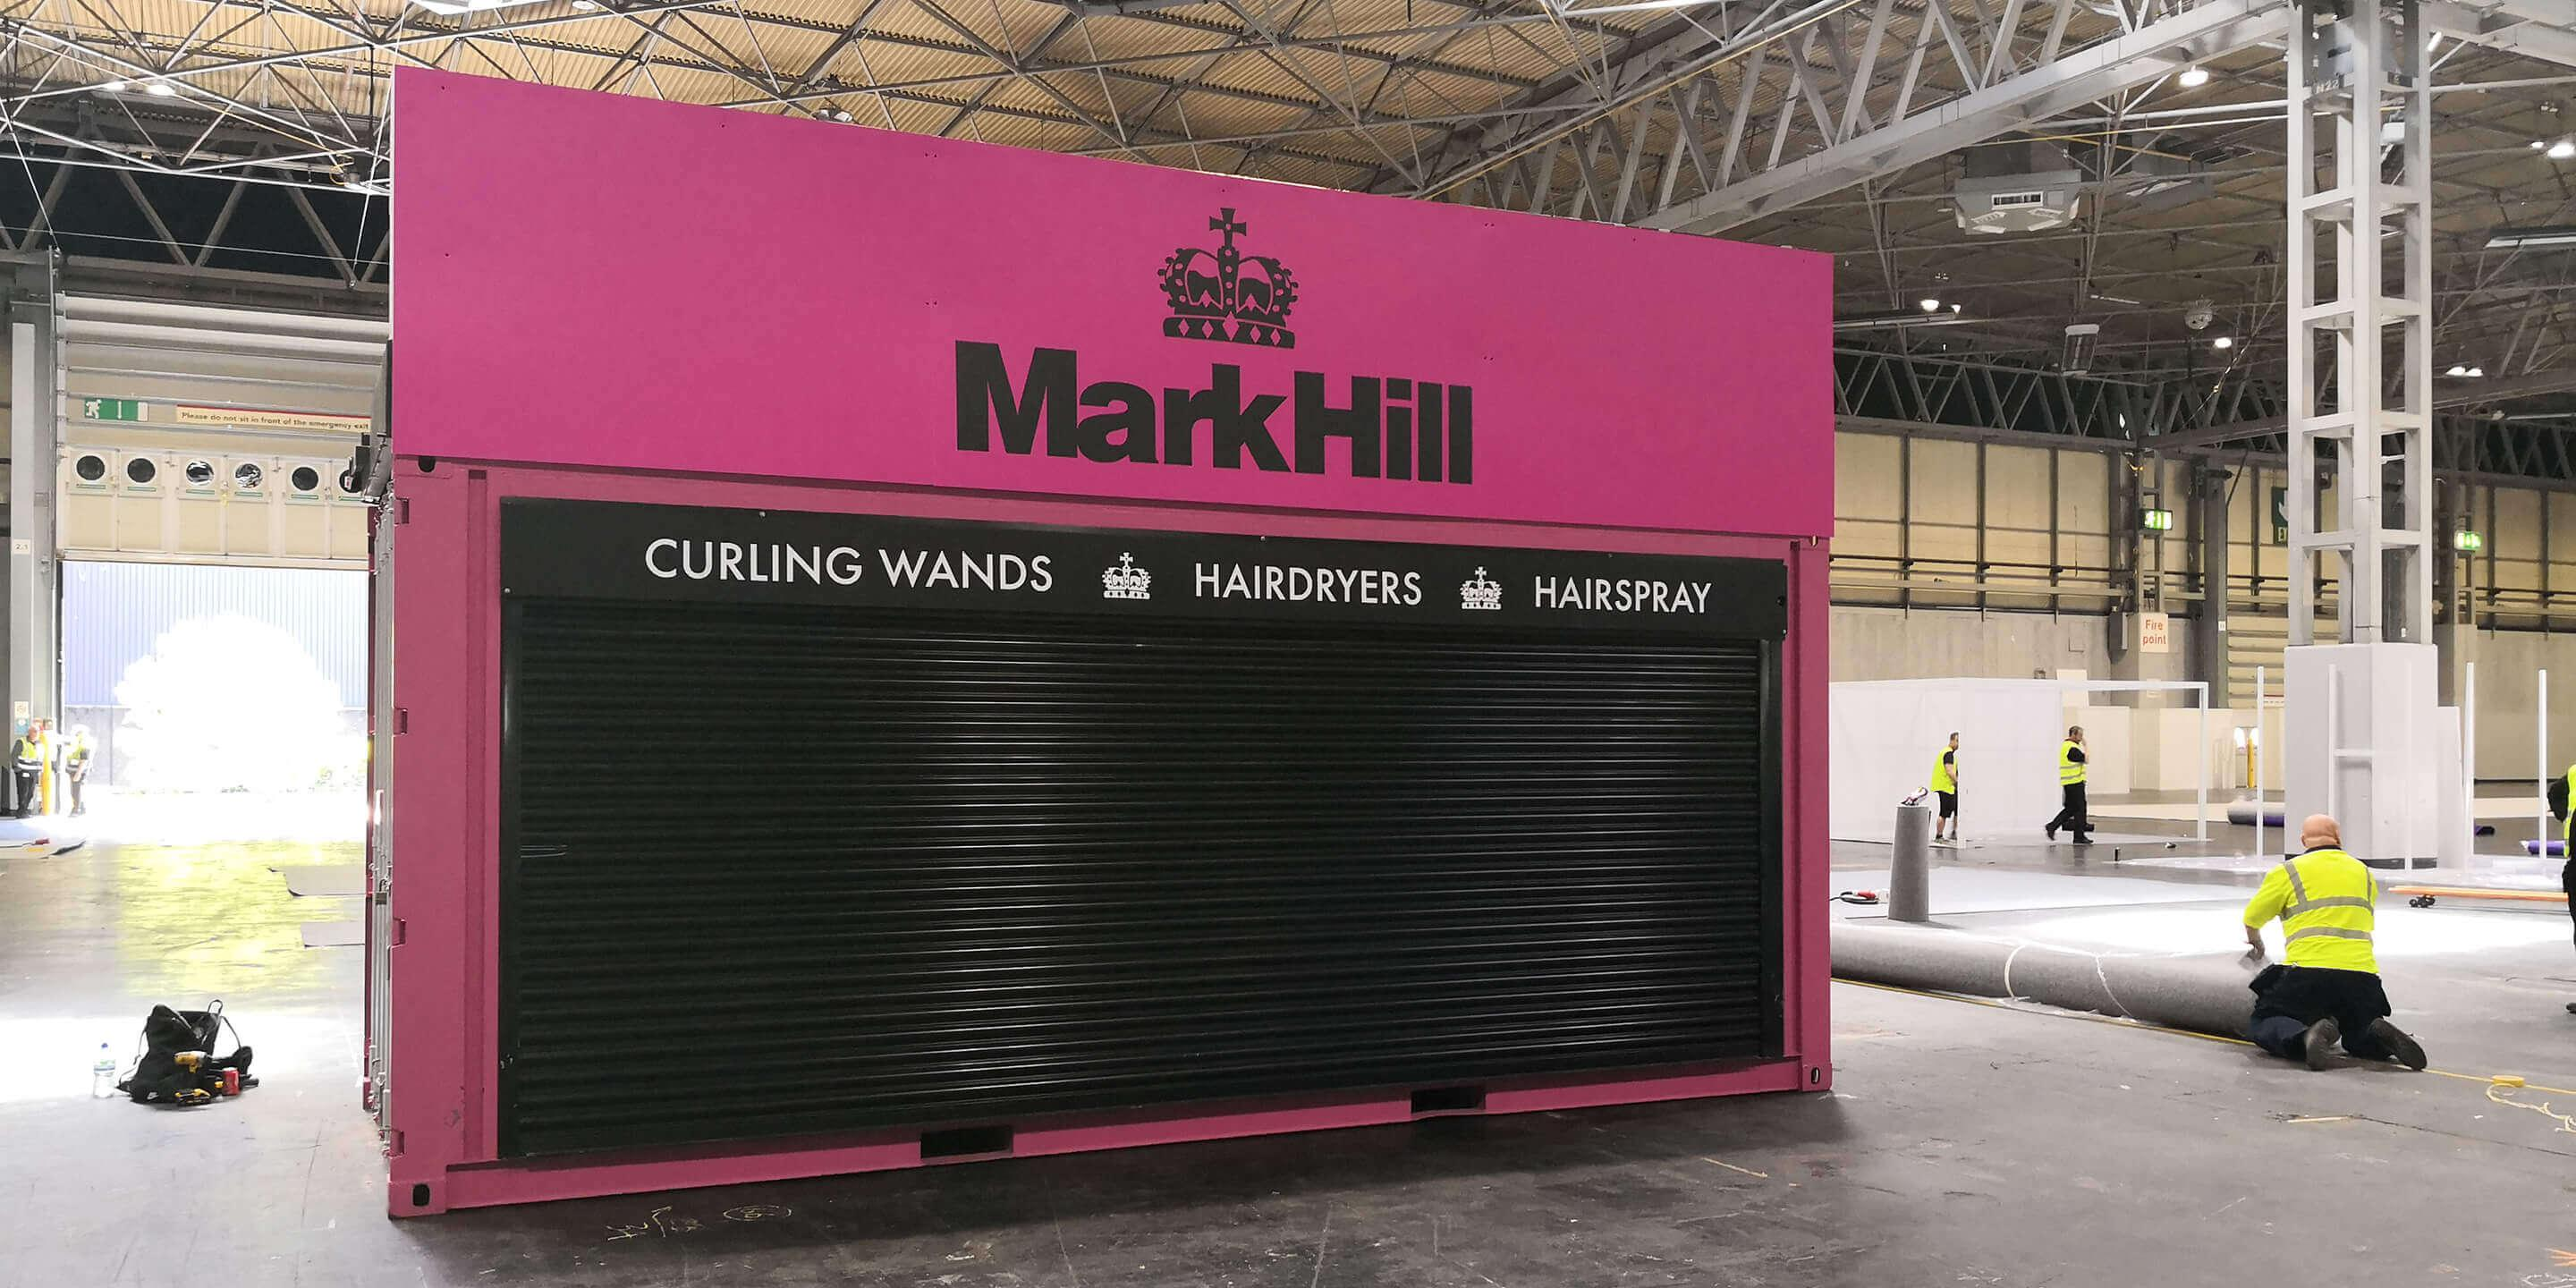 Event Shipping Containers: Gallery Event Container for Mark Hill Activation